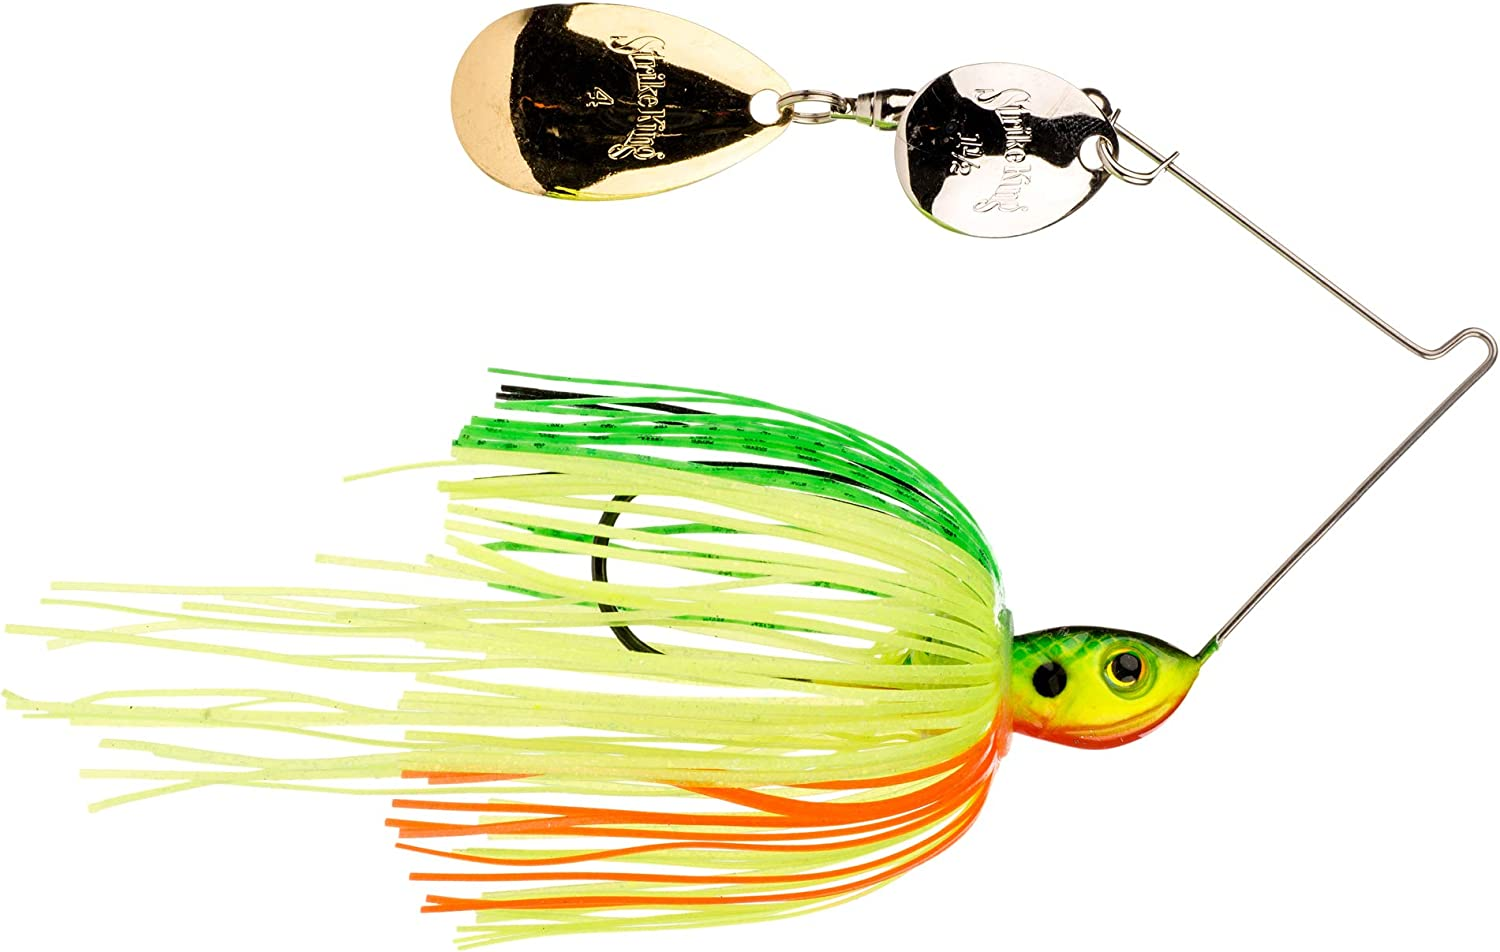 6 PACKS LINDY BLADES #4 WILLOW LBW413 ALEWIFE 3 PER PACK-18 TOTAL